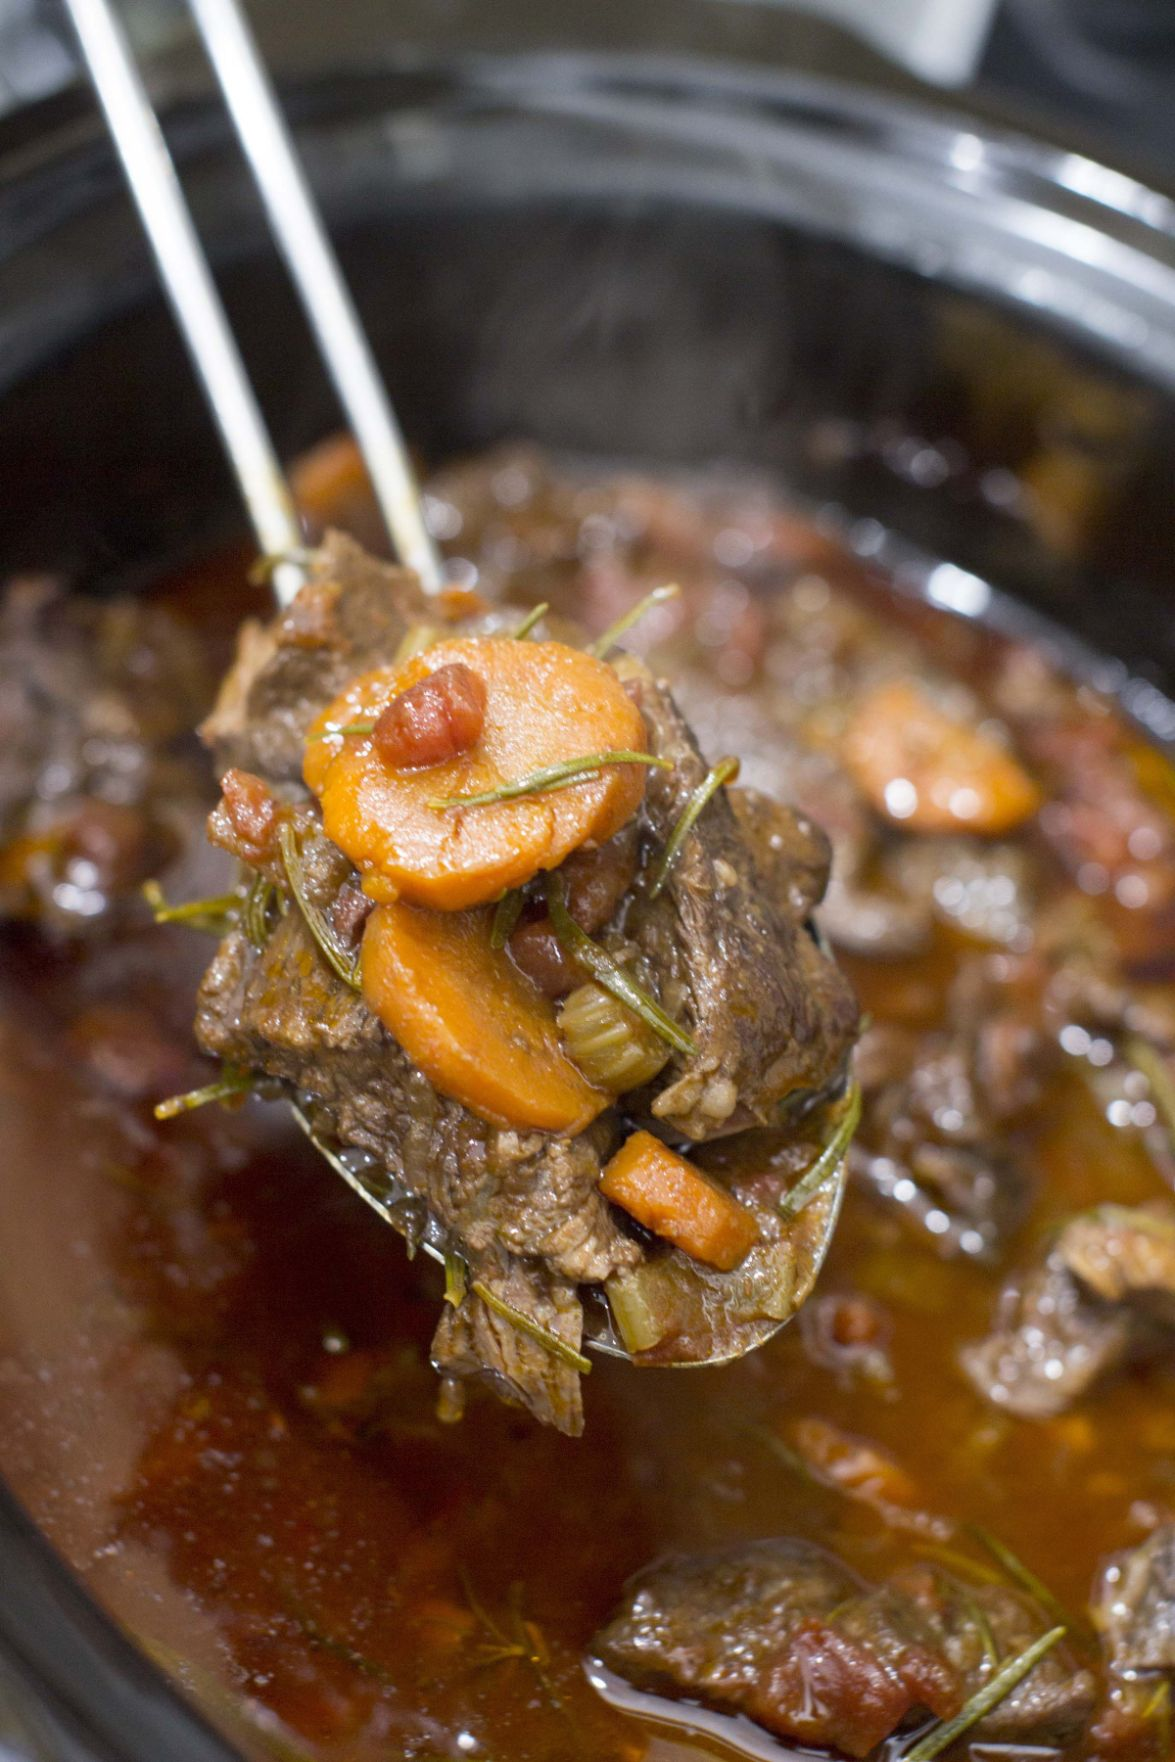 Wine-braised short ribs prove worth of slow cooker